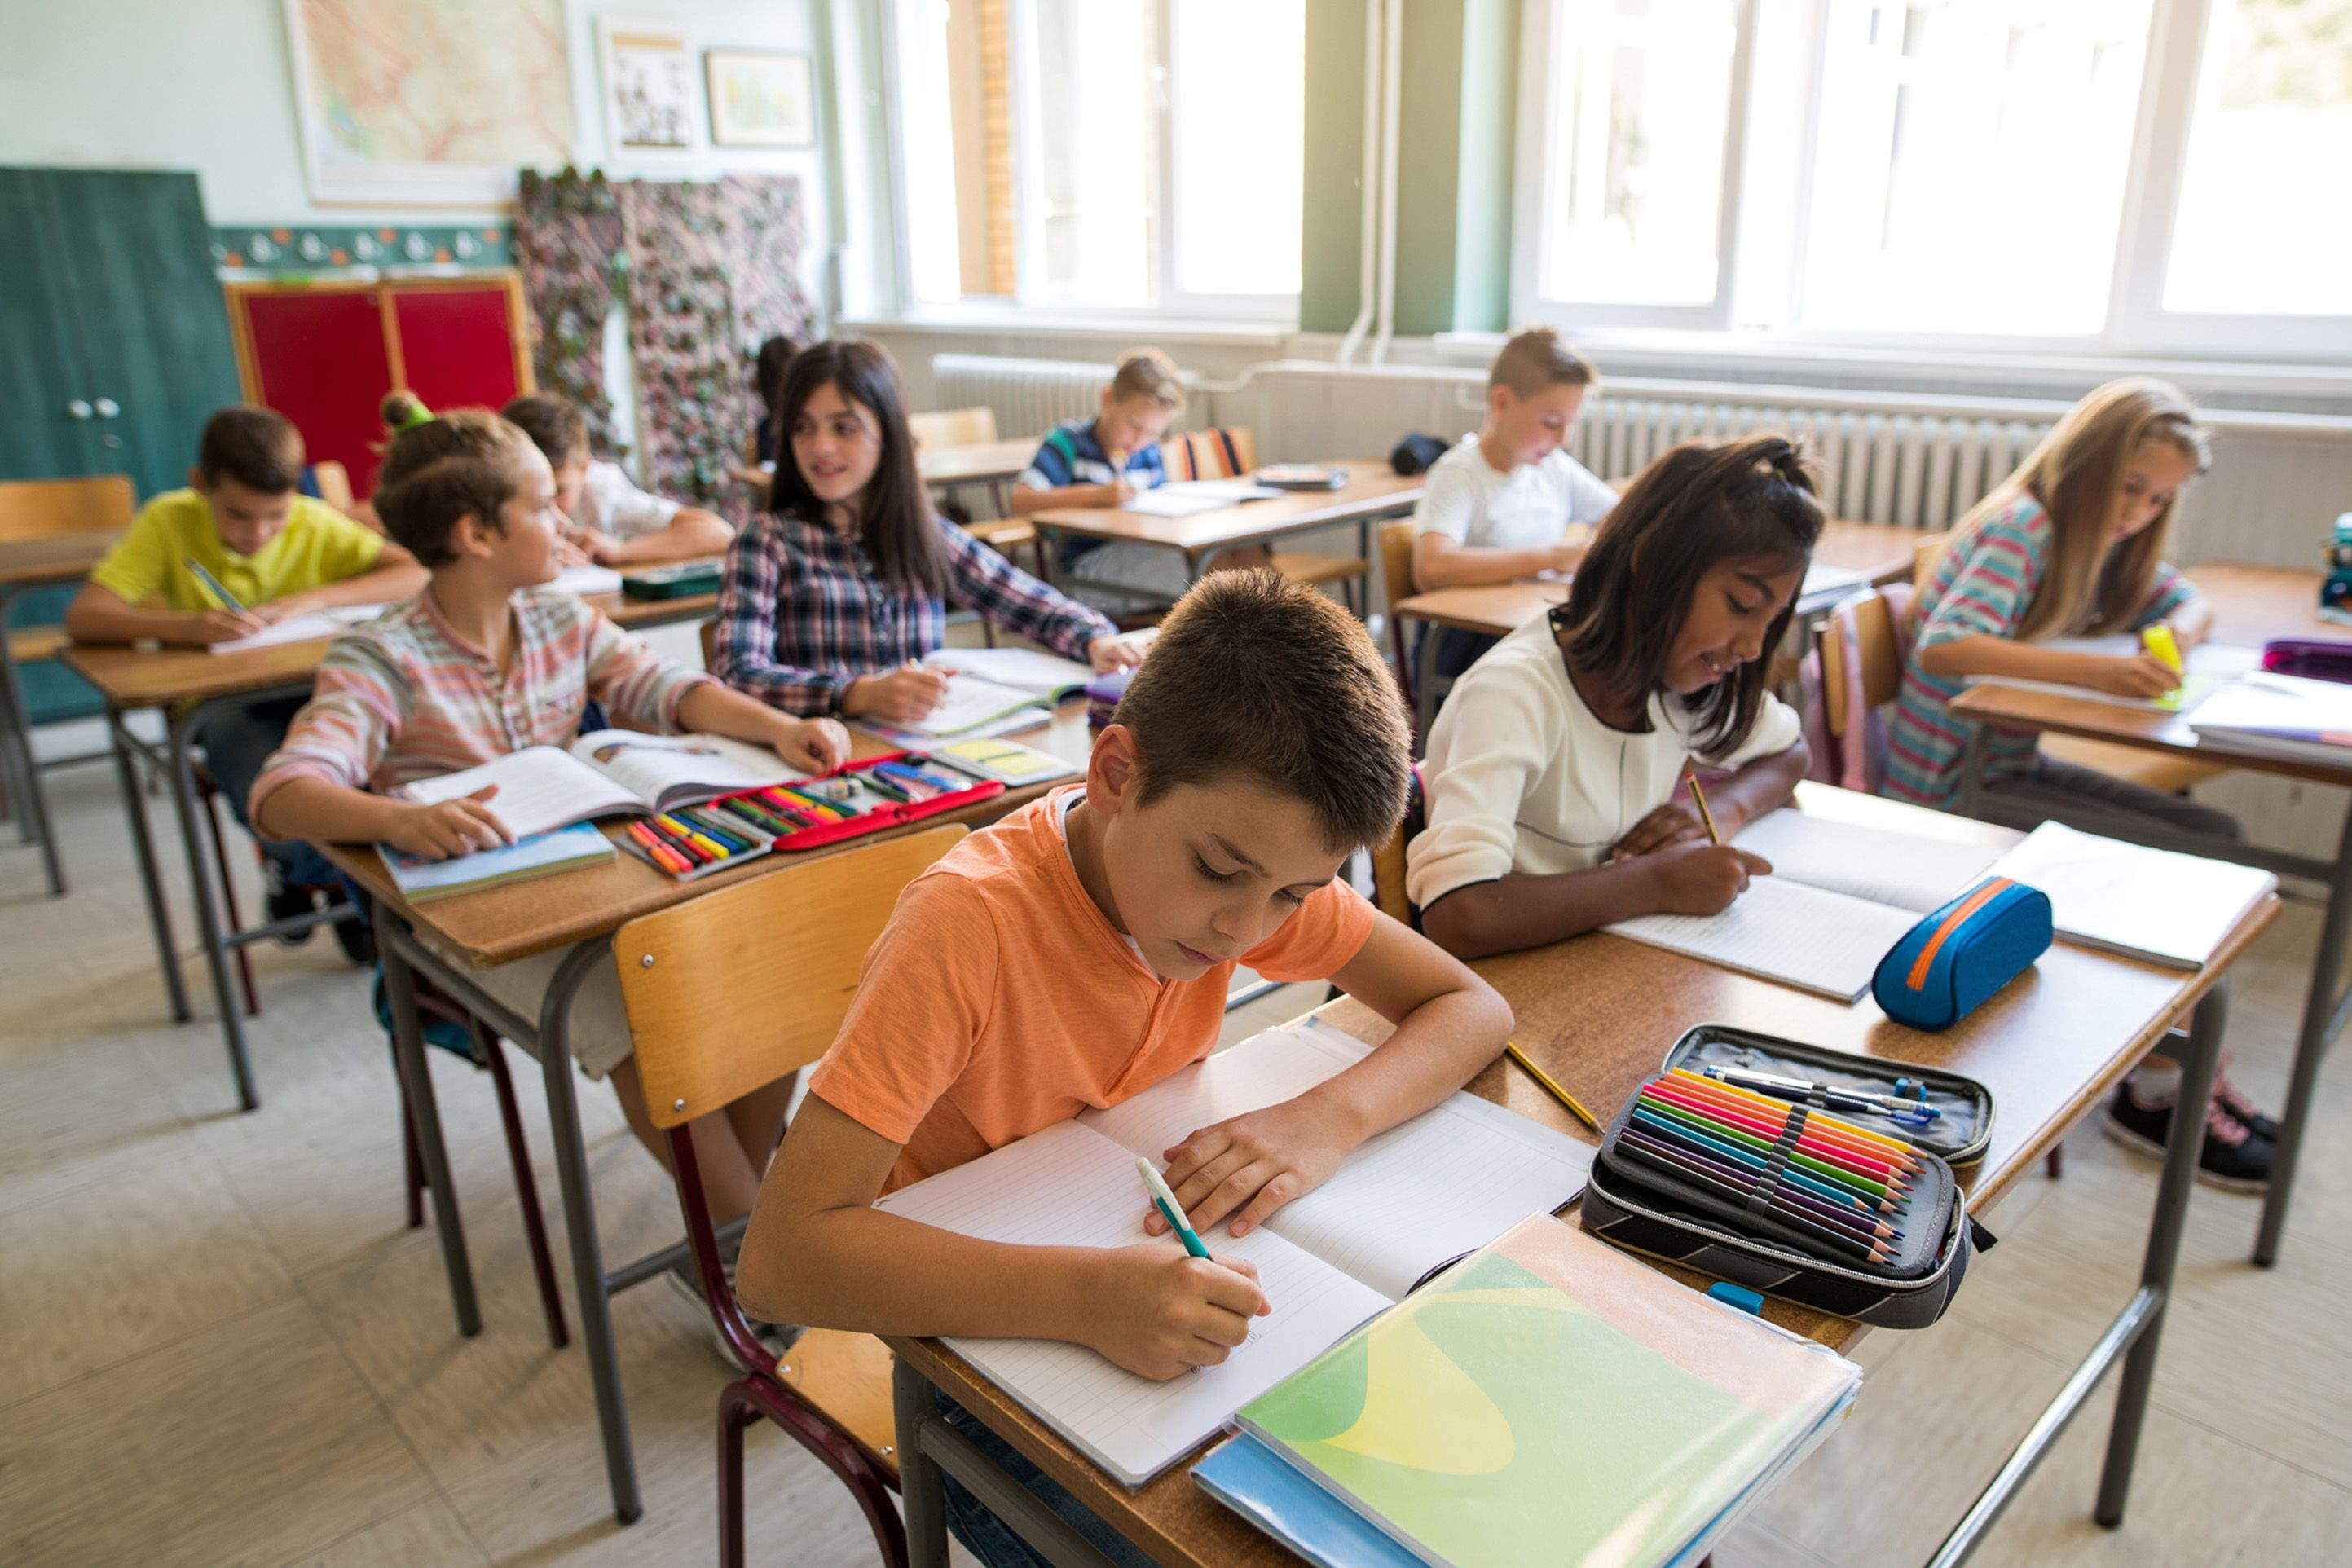 Schools all over the world have struggled to adapt to the rise of pocket-sized devices as parents grow increasingly anxious about the amount of time their children spend glued to the screen. u00a9 skynesher / IStock.com